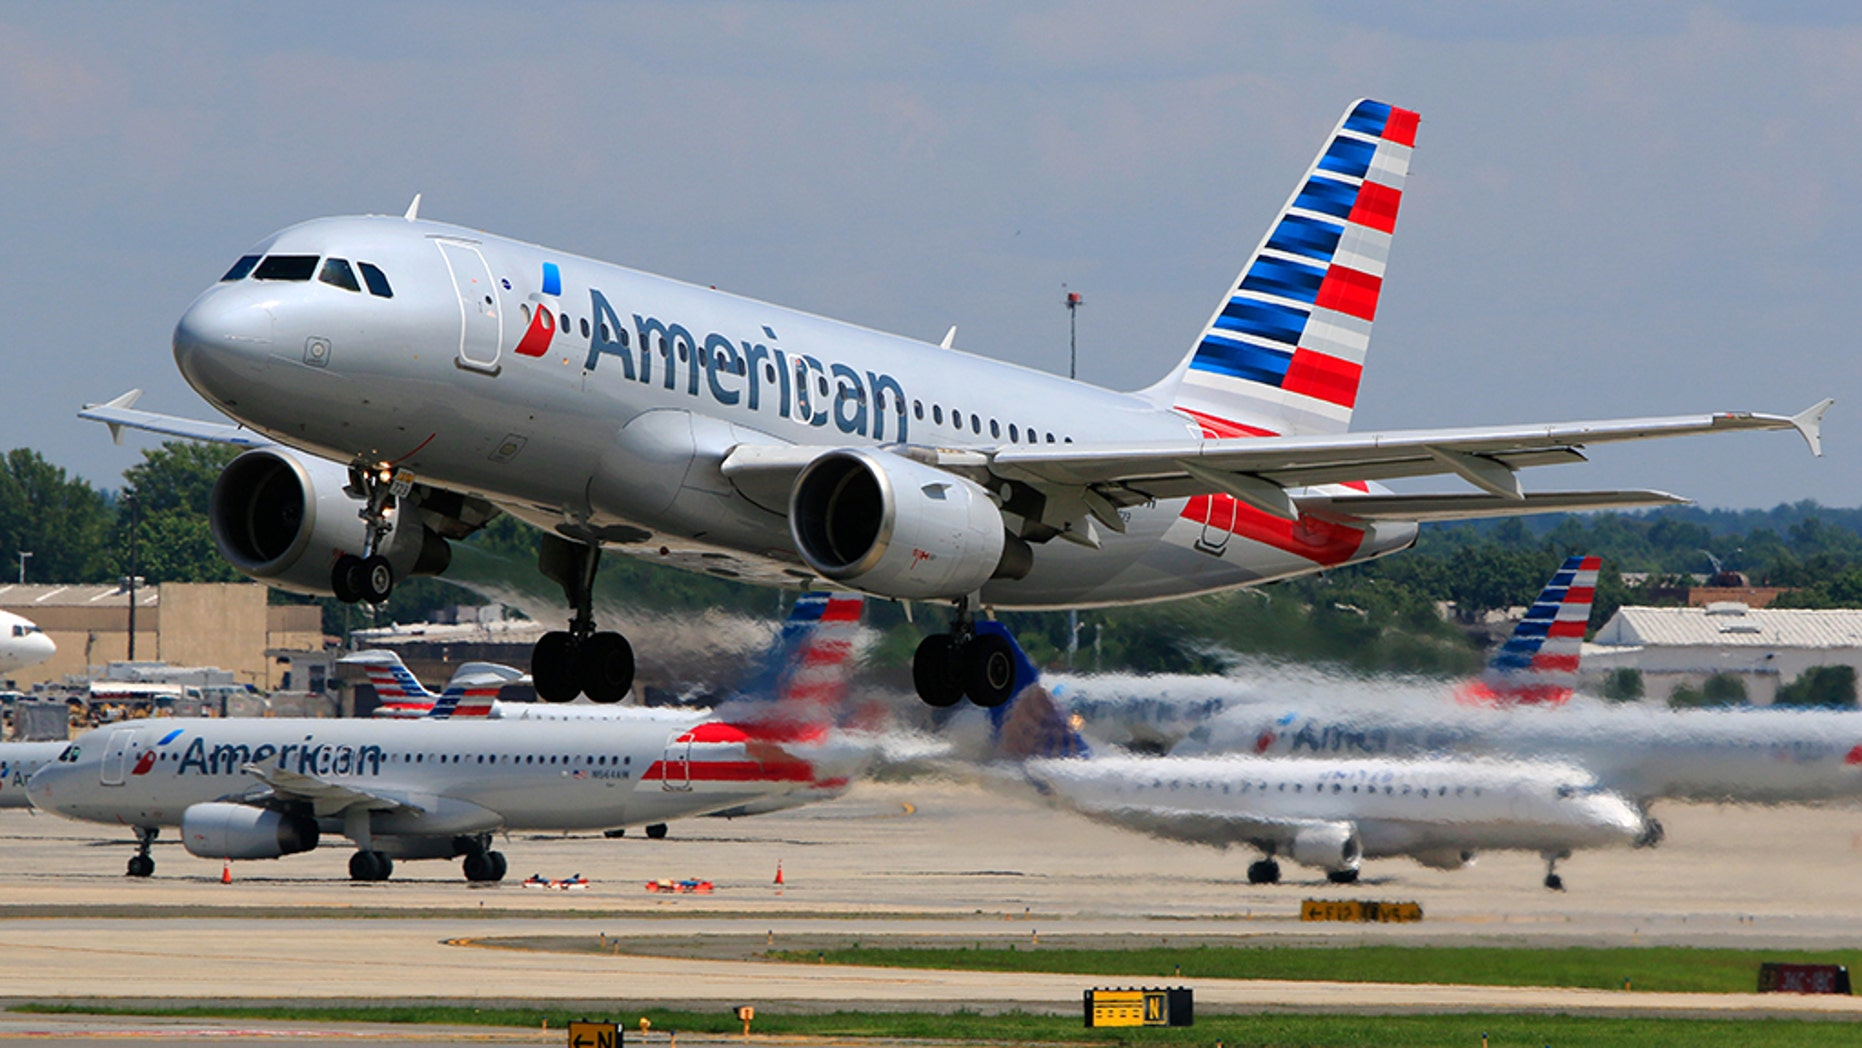 American Airlines spokeswoman Leslie Scott says the e-cigarette's battery overheated.